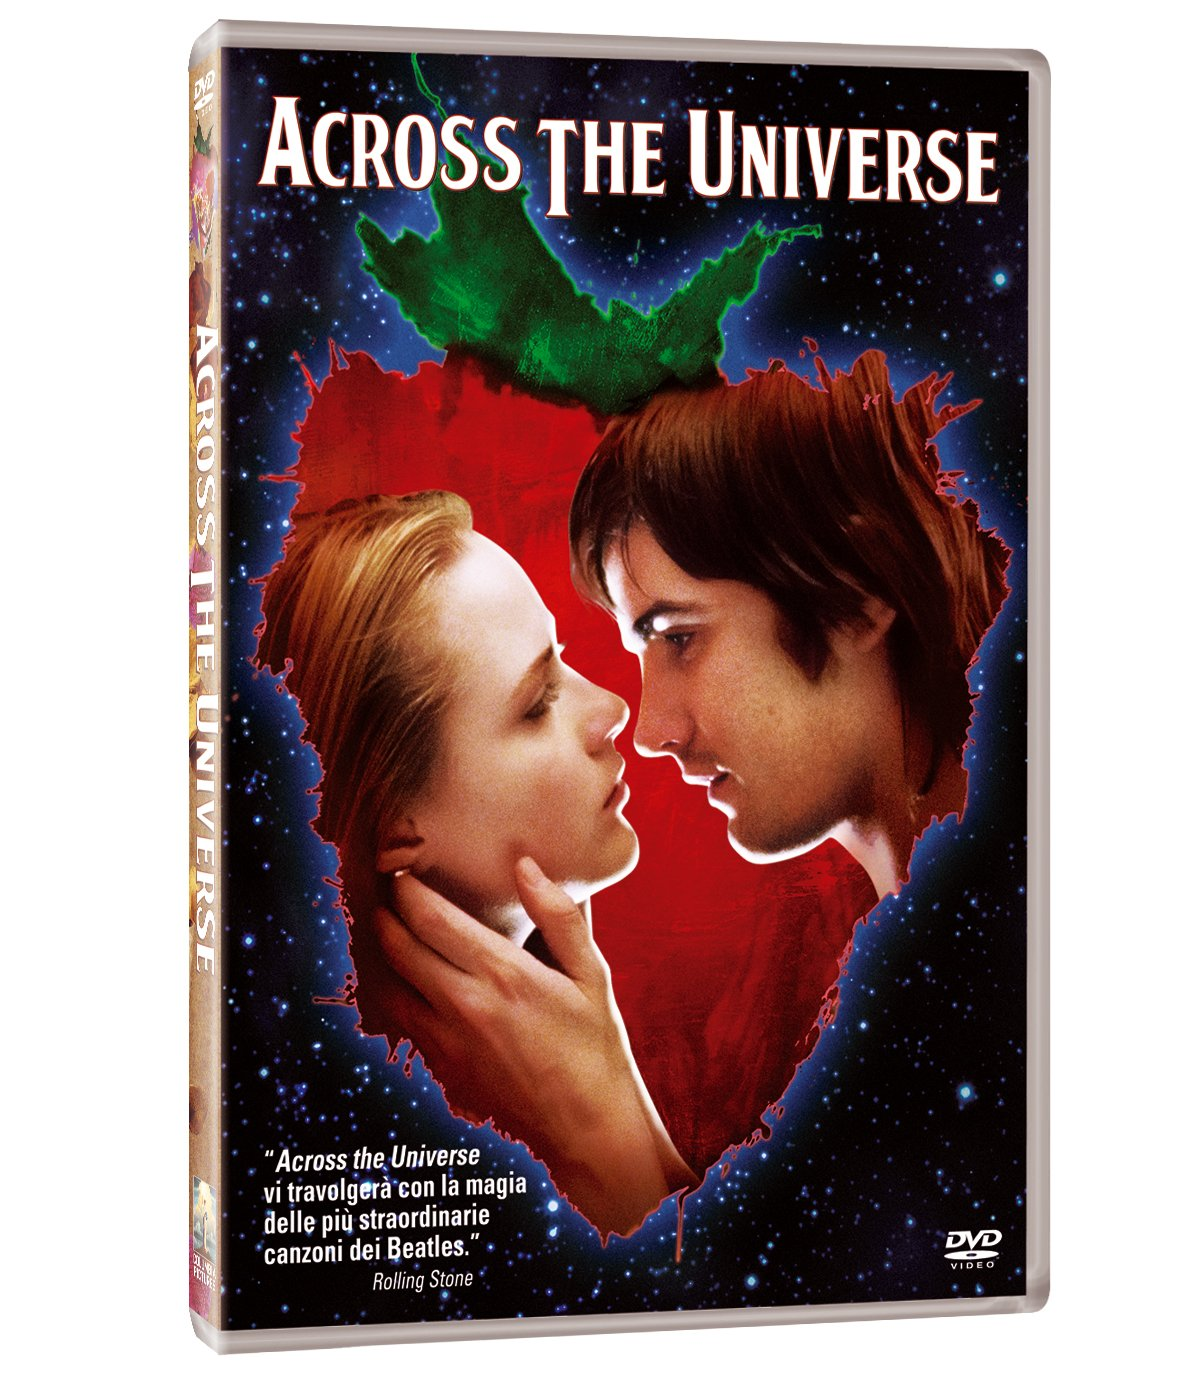 ACROSS THE UNIVERSE (DVD)